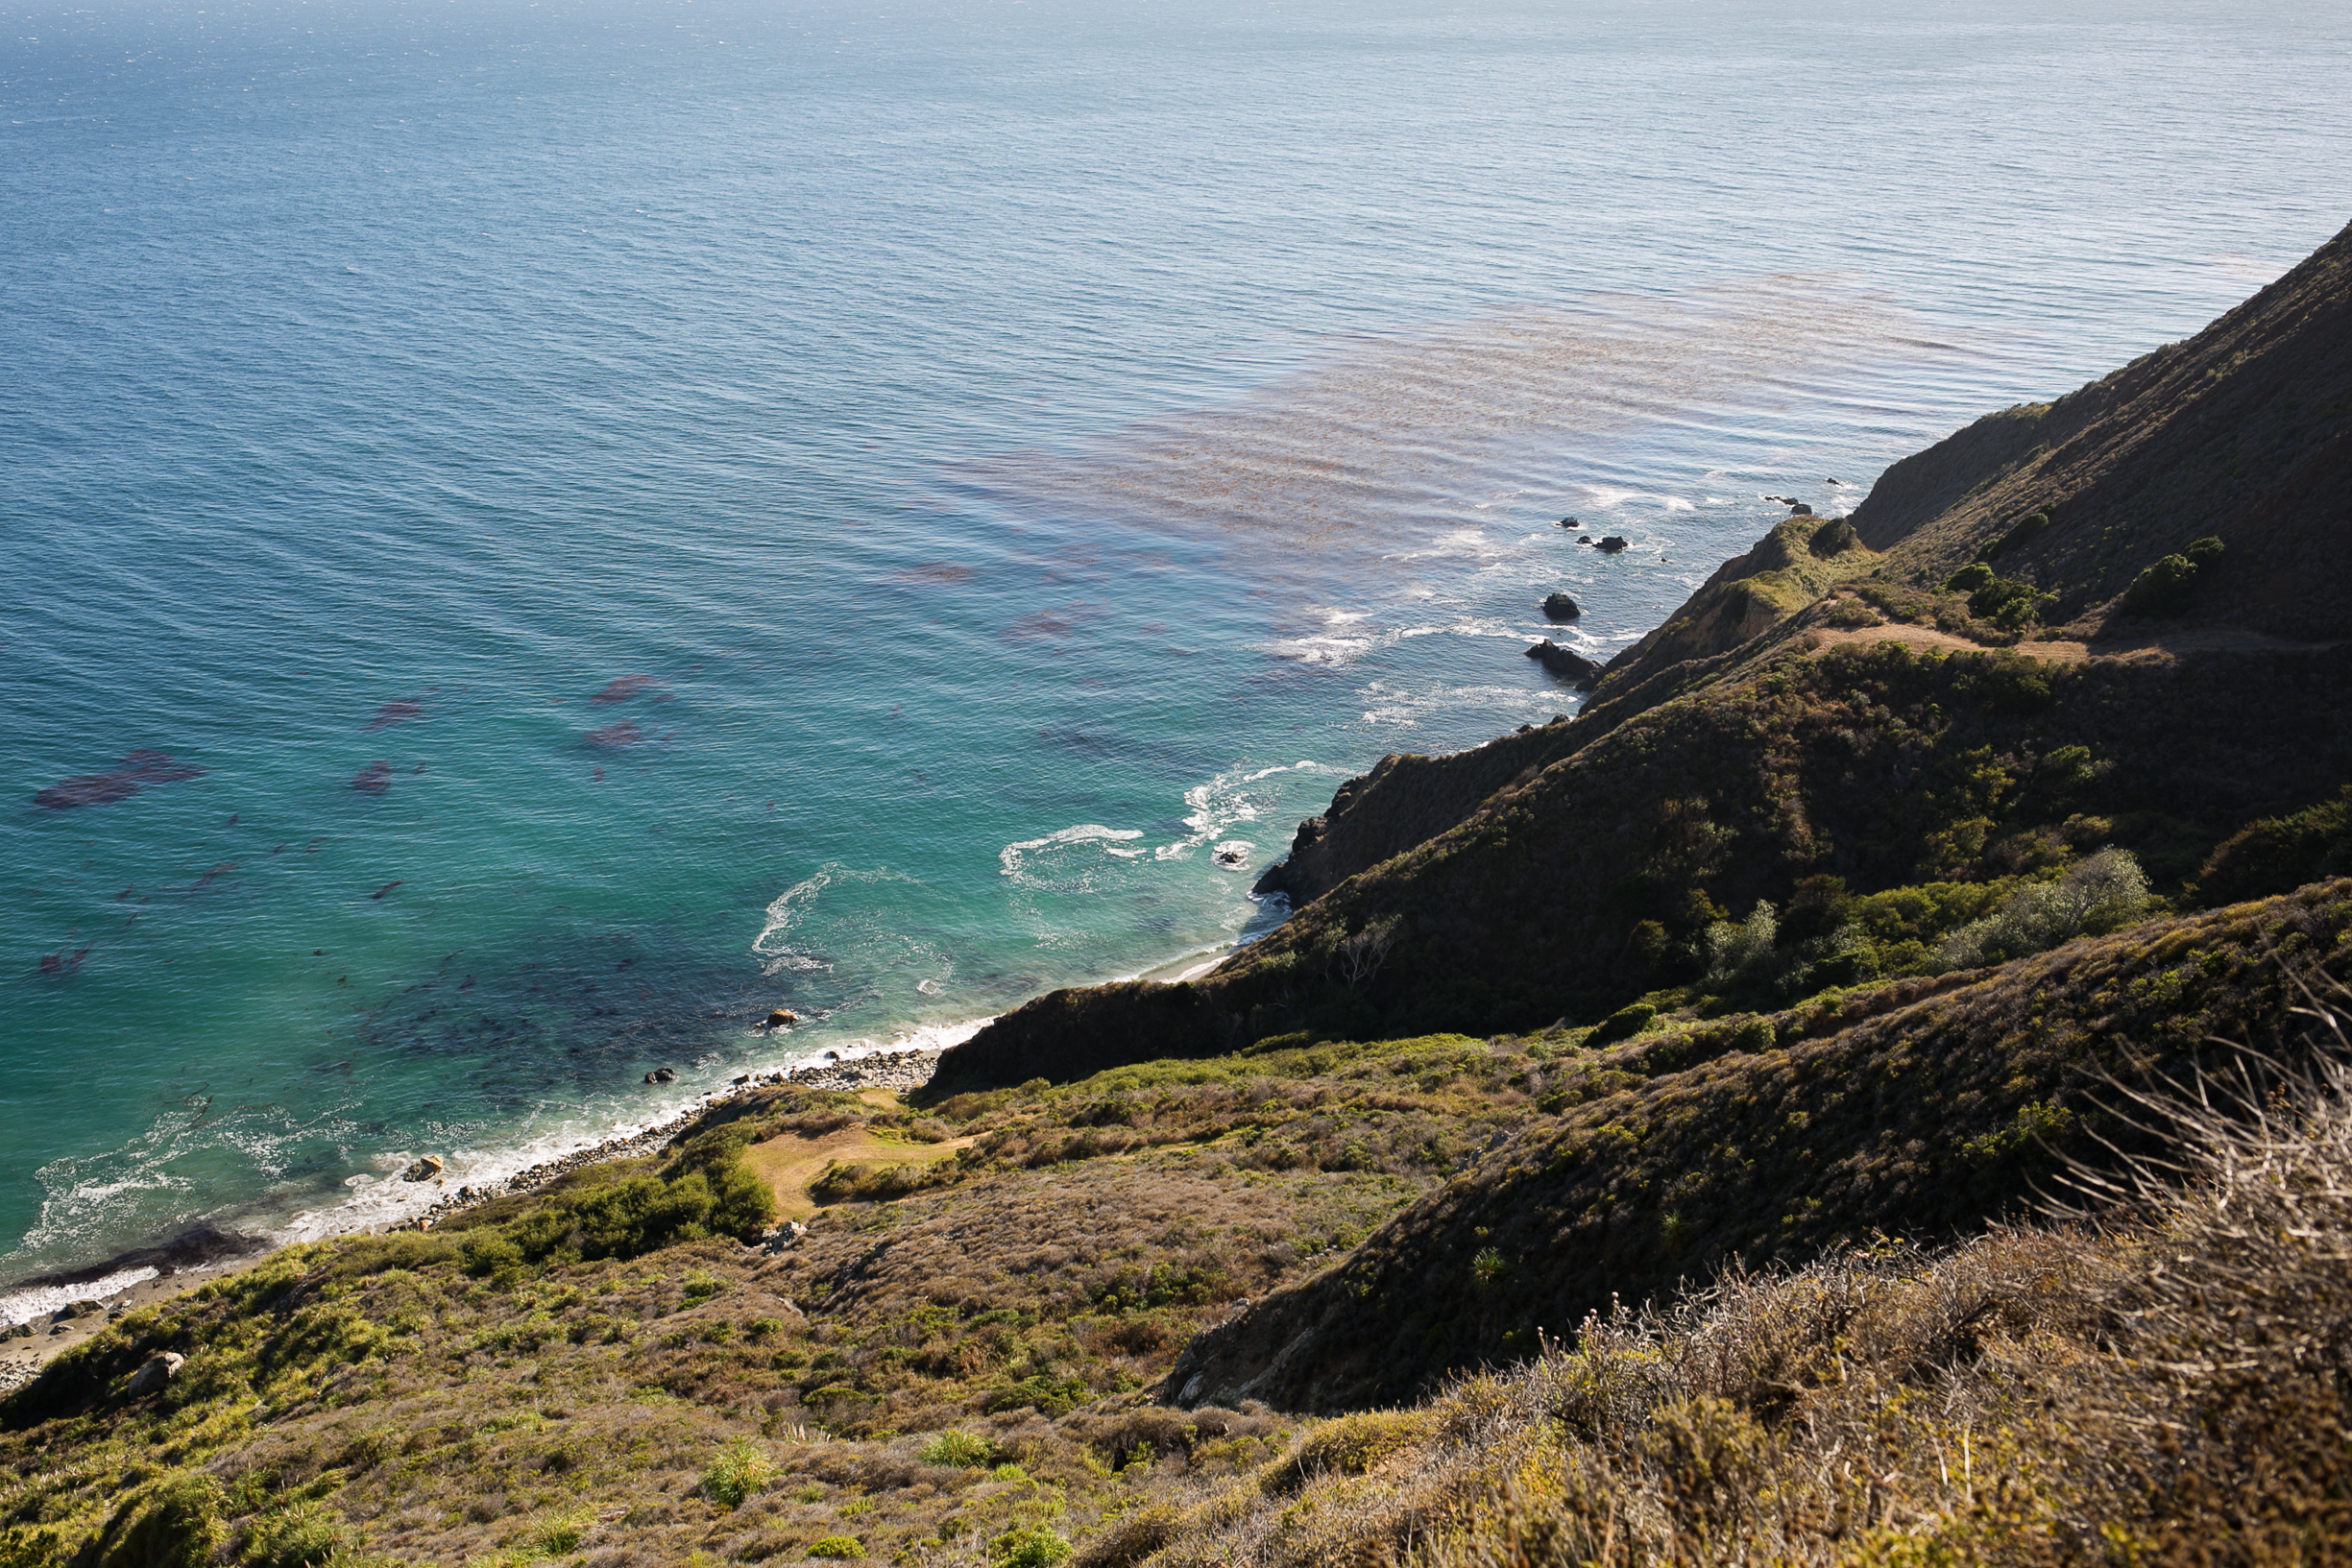 Big_Sur_View_of_Pacific_Ocean_by_Naomi_Yamada-1.jpg